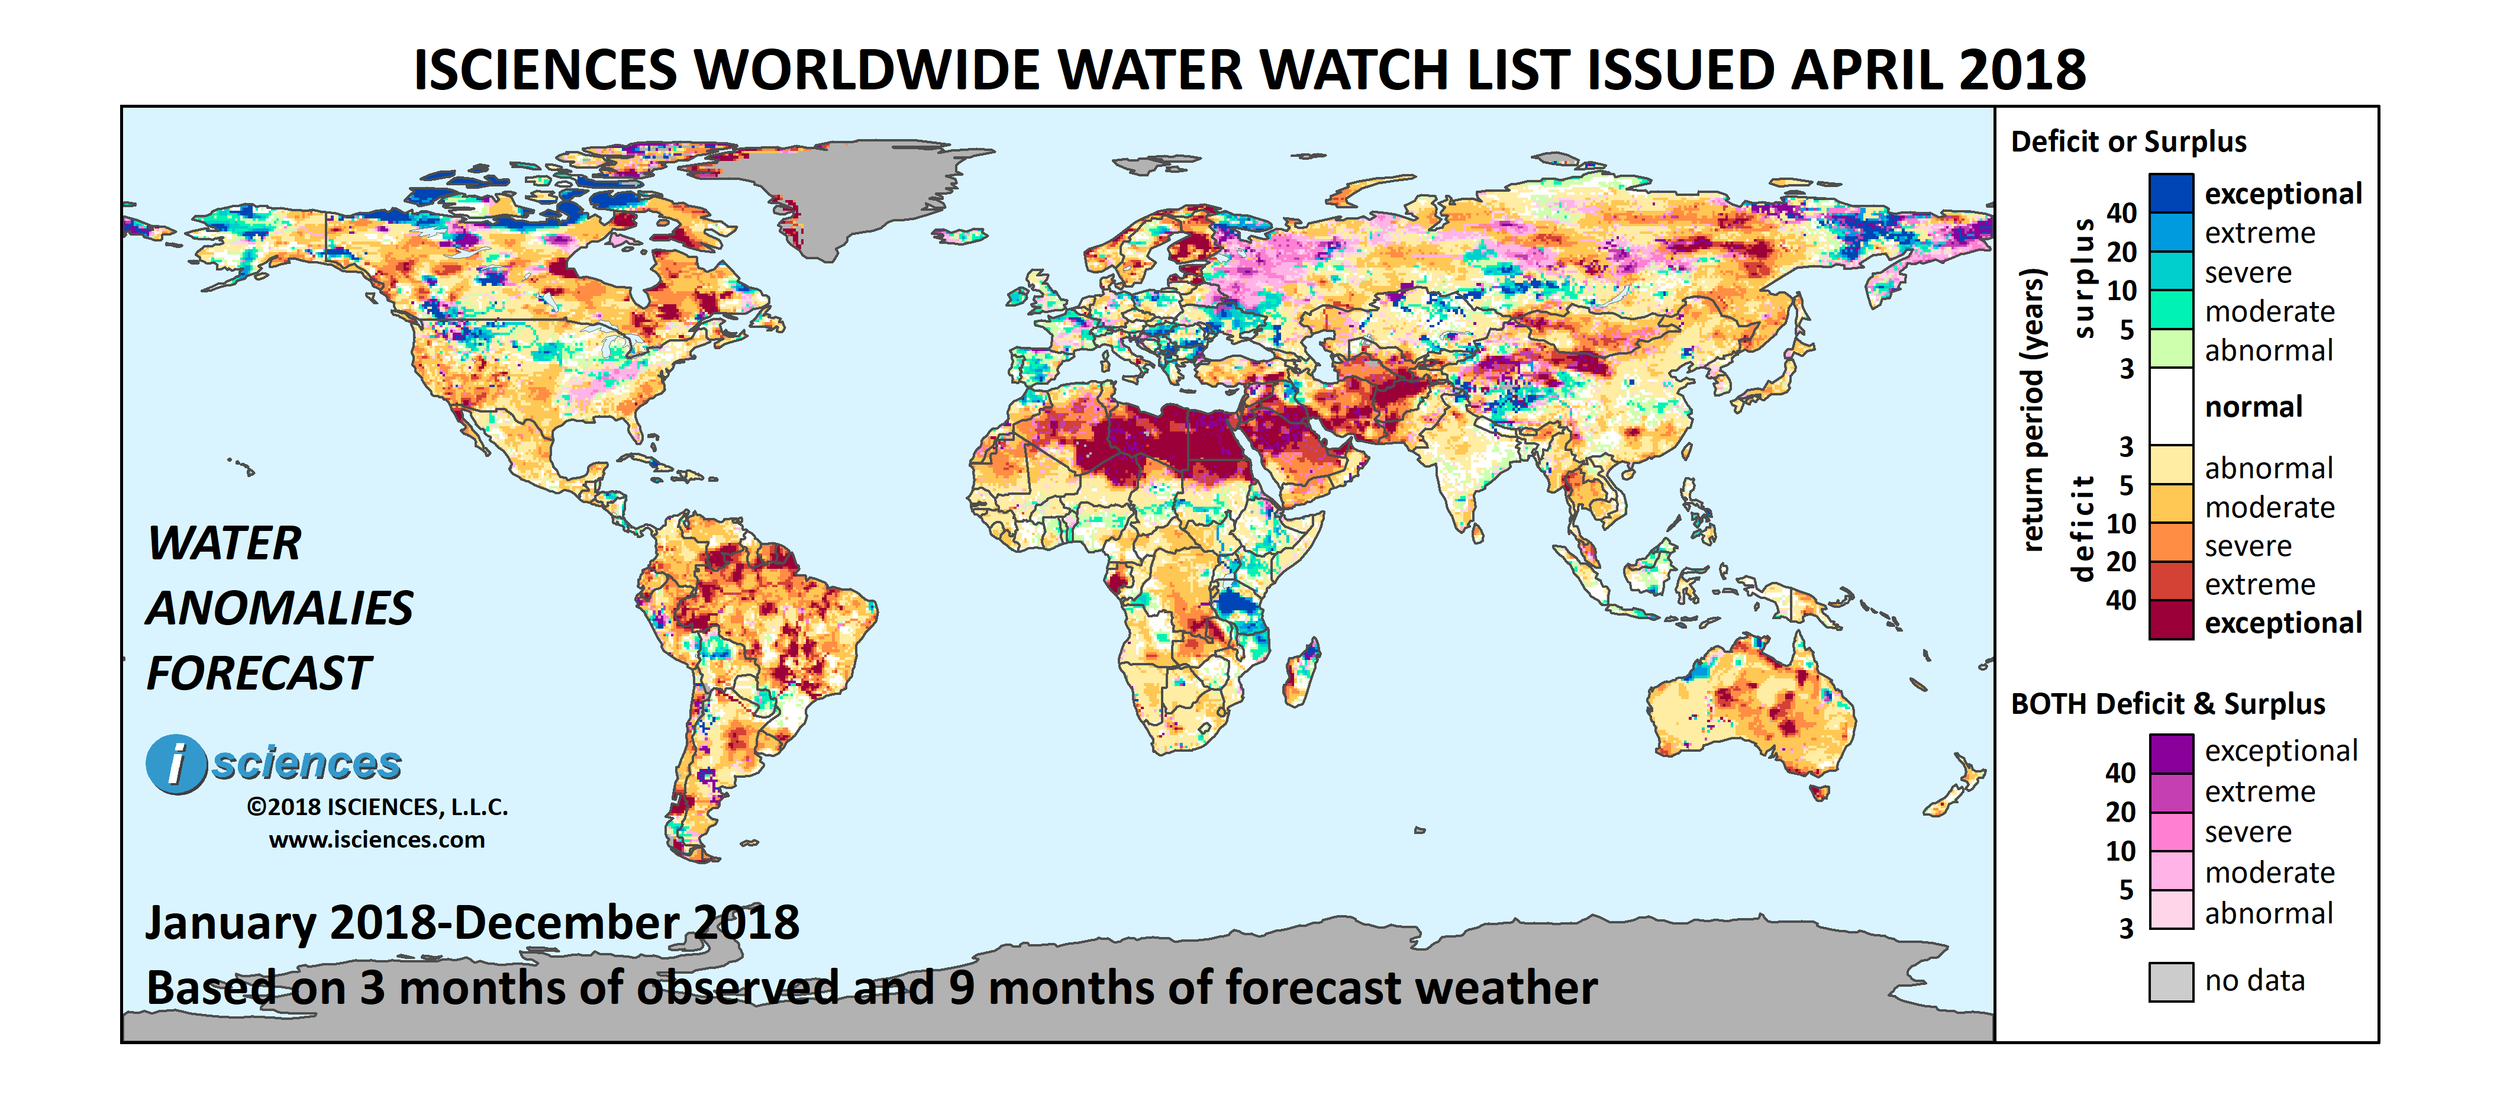 ISciences_Worldwide_Water_Watch_List_2018_Apr.png